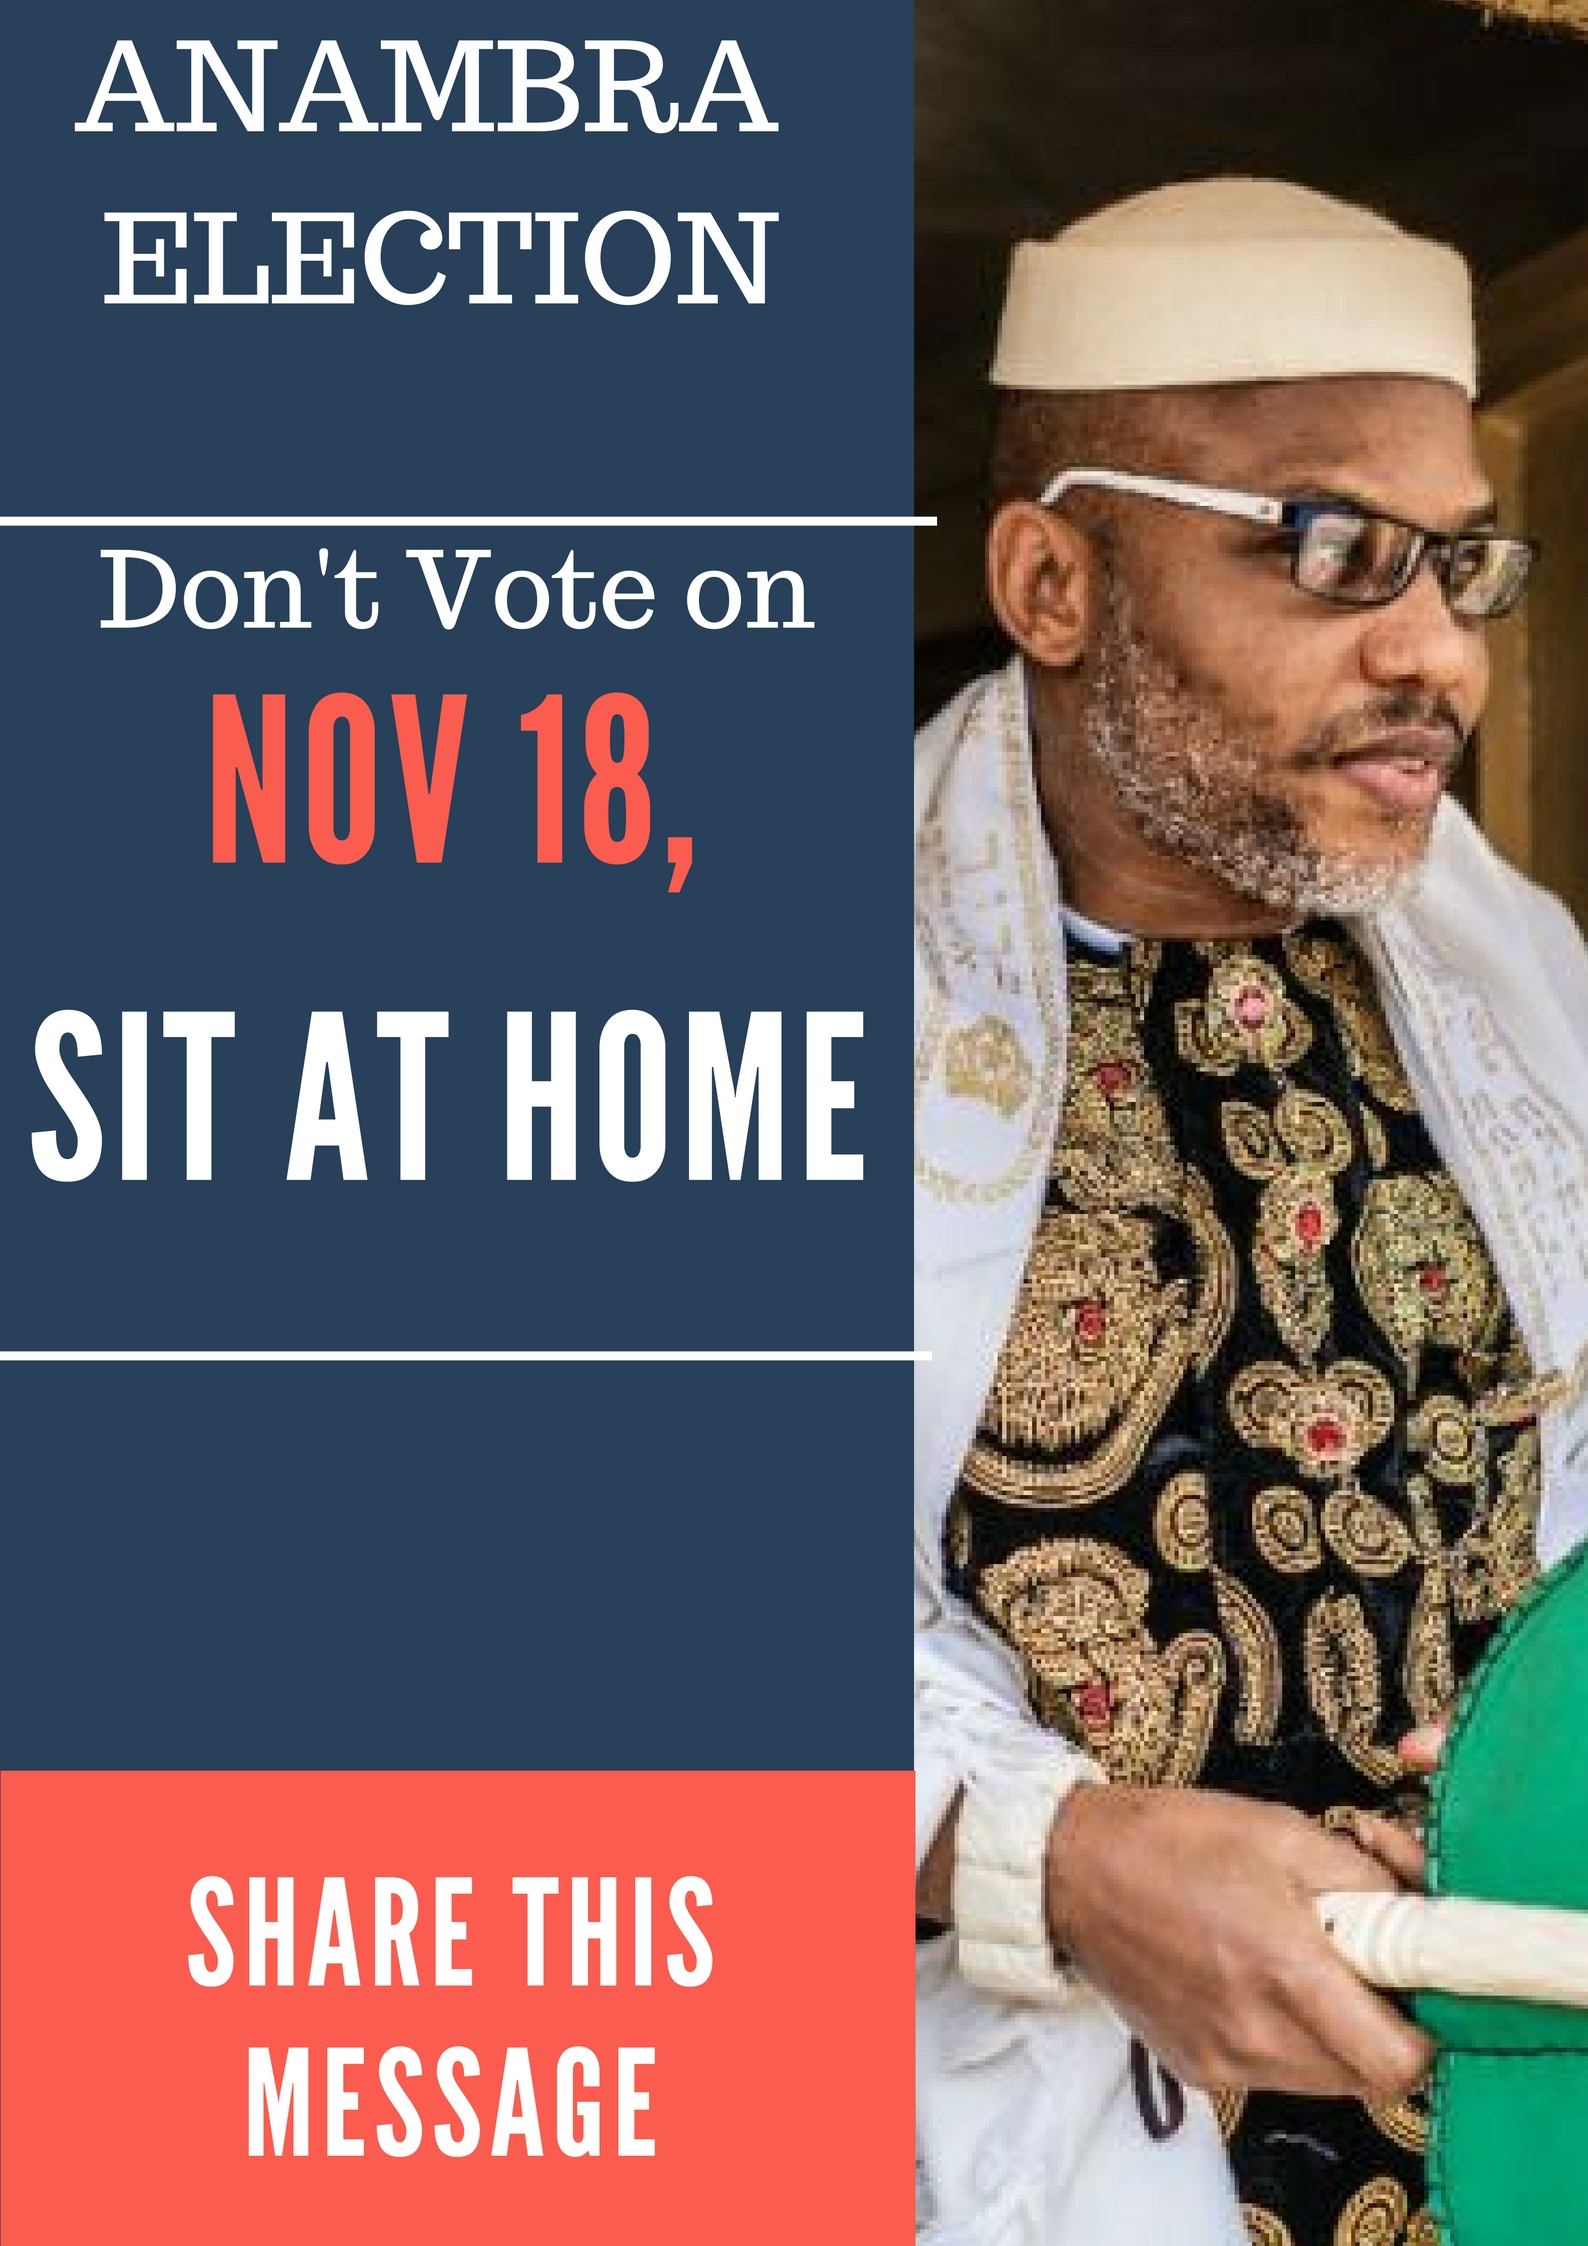 Photo of Anambra Poll: Do not vote, sit at home